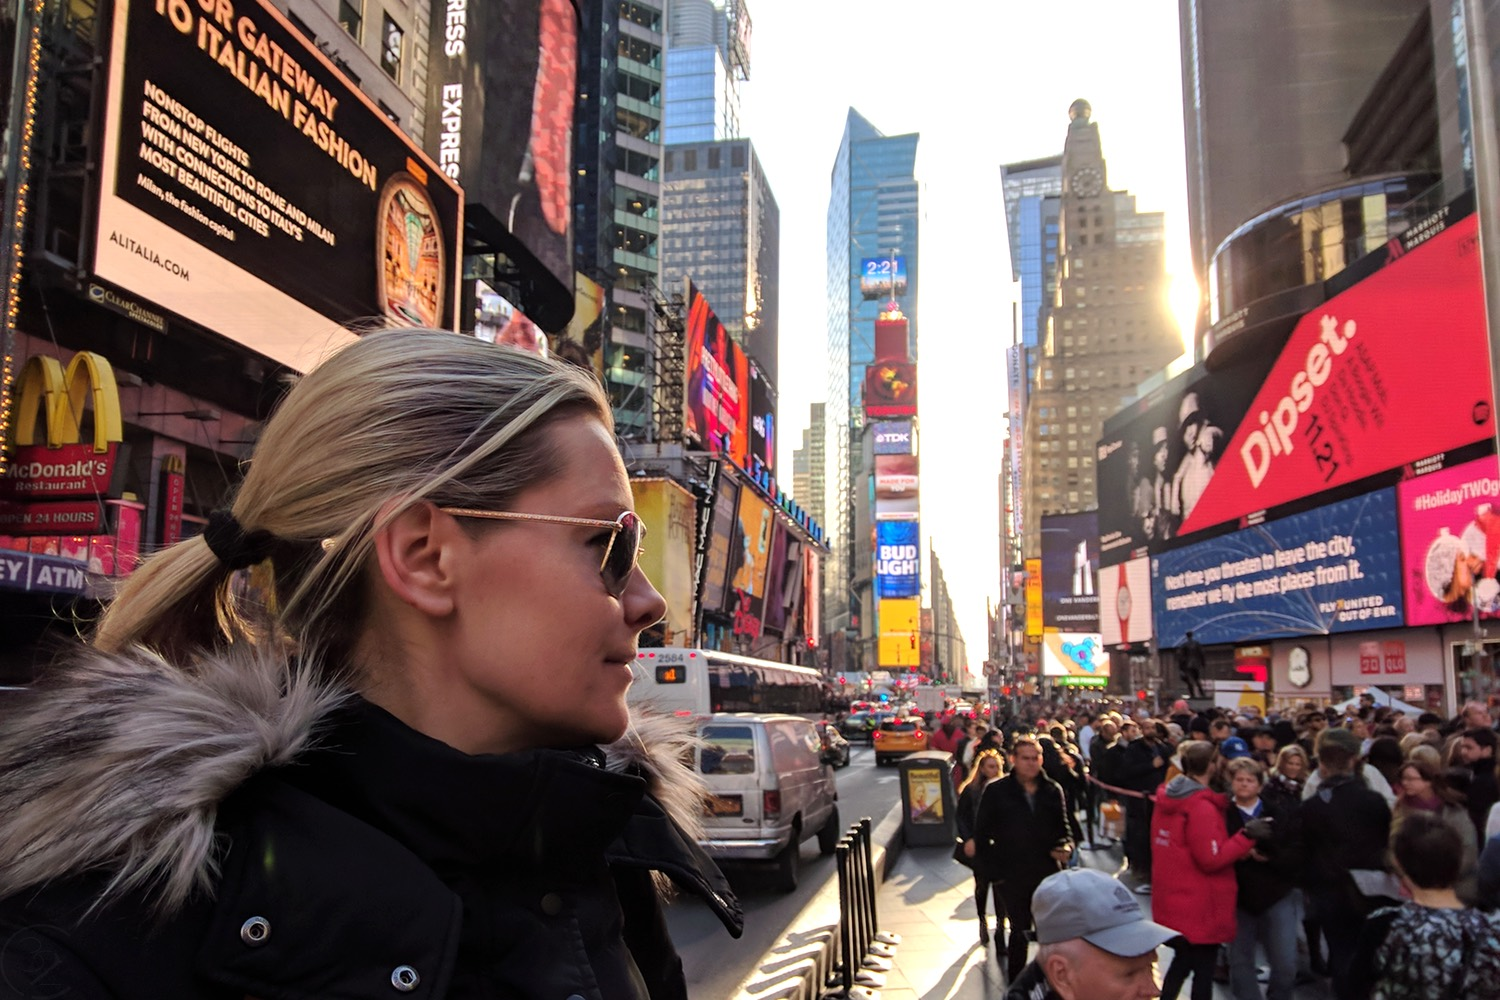 famous-landmarks-tv-shows-movies-nyc-character-32-c32-new-york-manhattan-travel-times-square